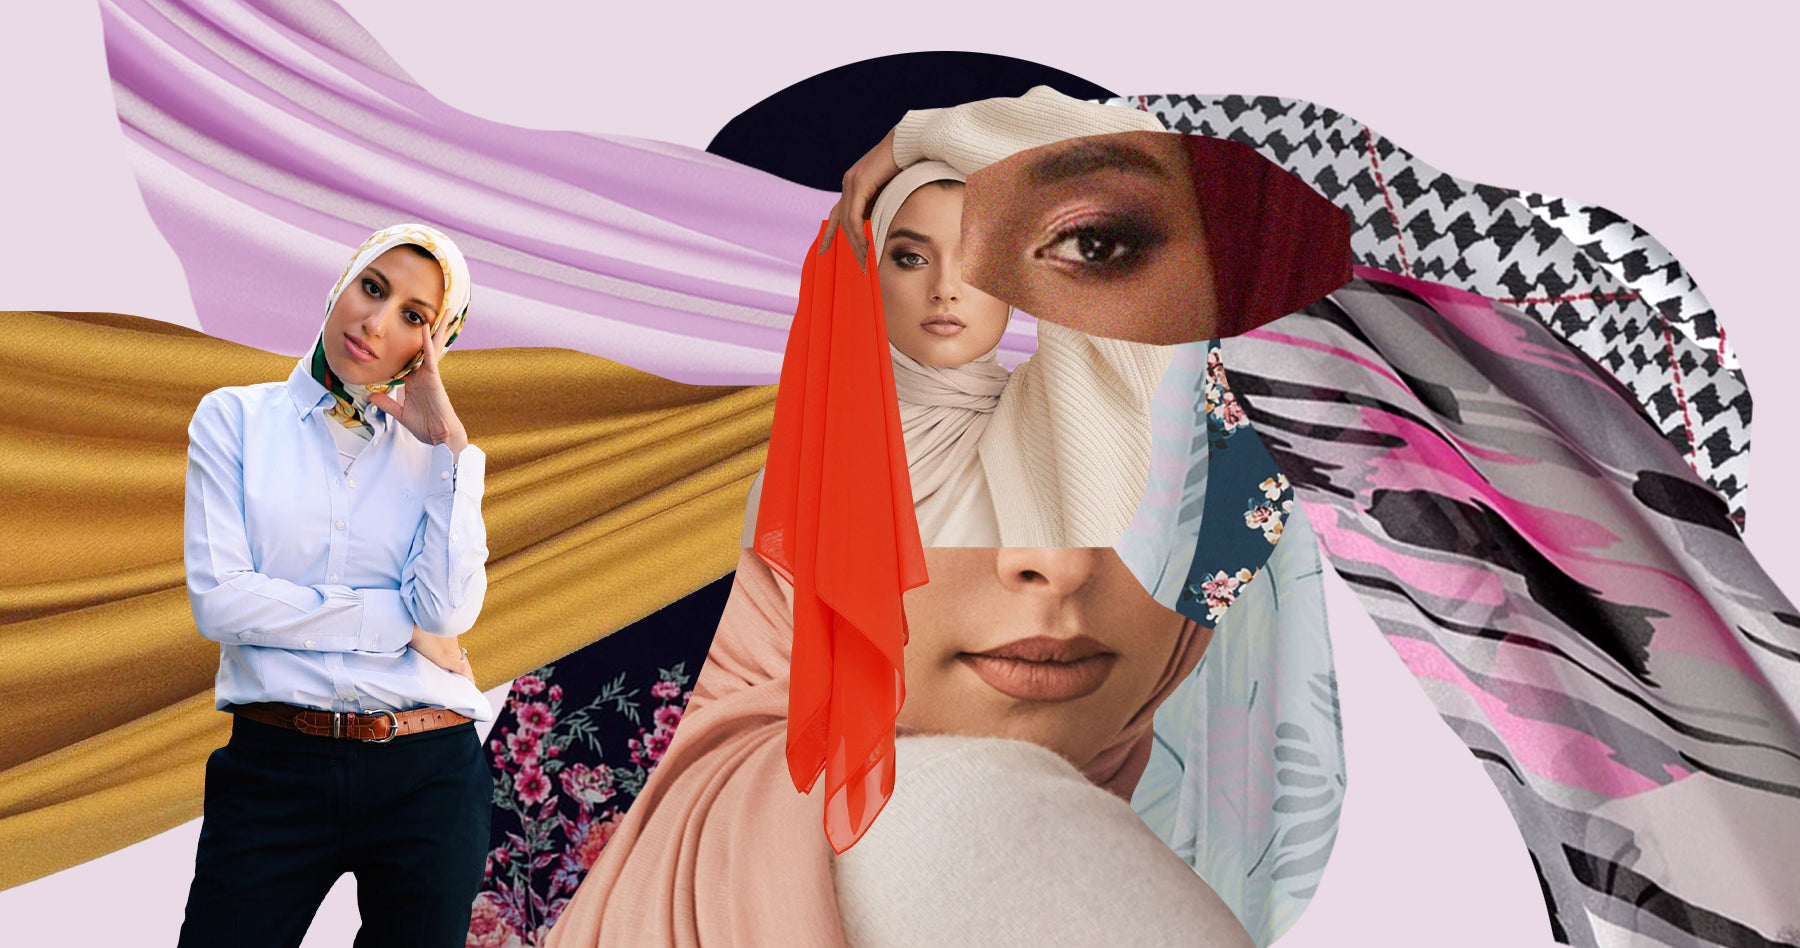 Vanguard Podcast: She Traded a Career in Law for High-Fashion Hijabs